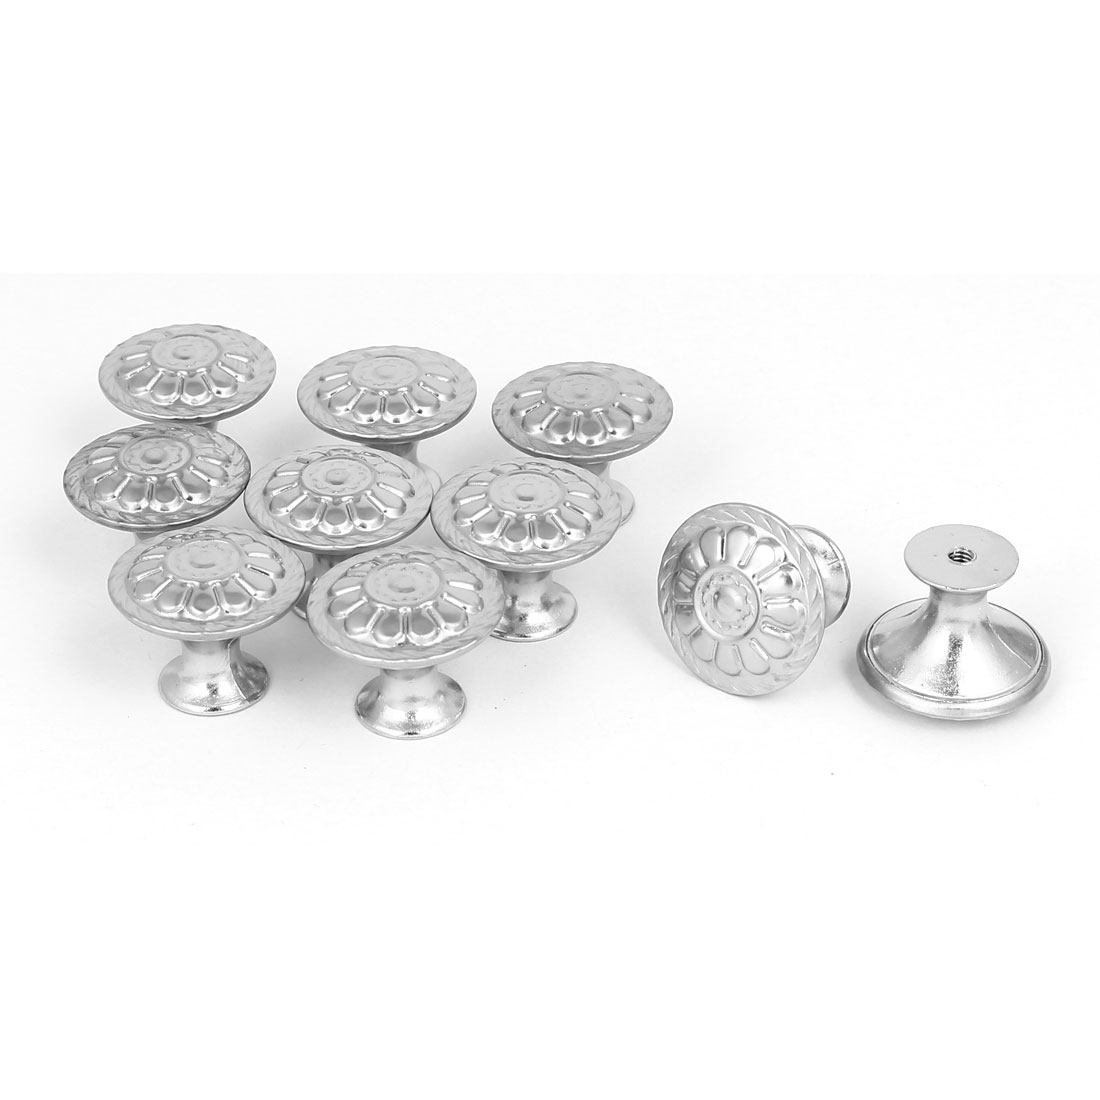 Wardrobe Drawer Single Hole Flower Printed Pull Knobs Grips 27.5mmx21.5mm 10pcs